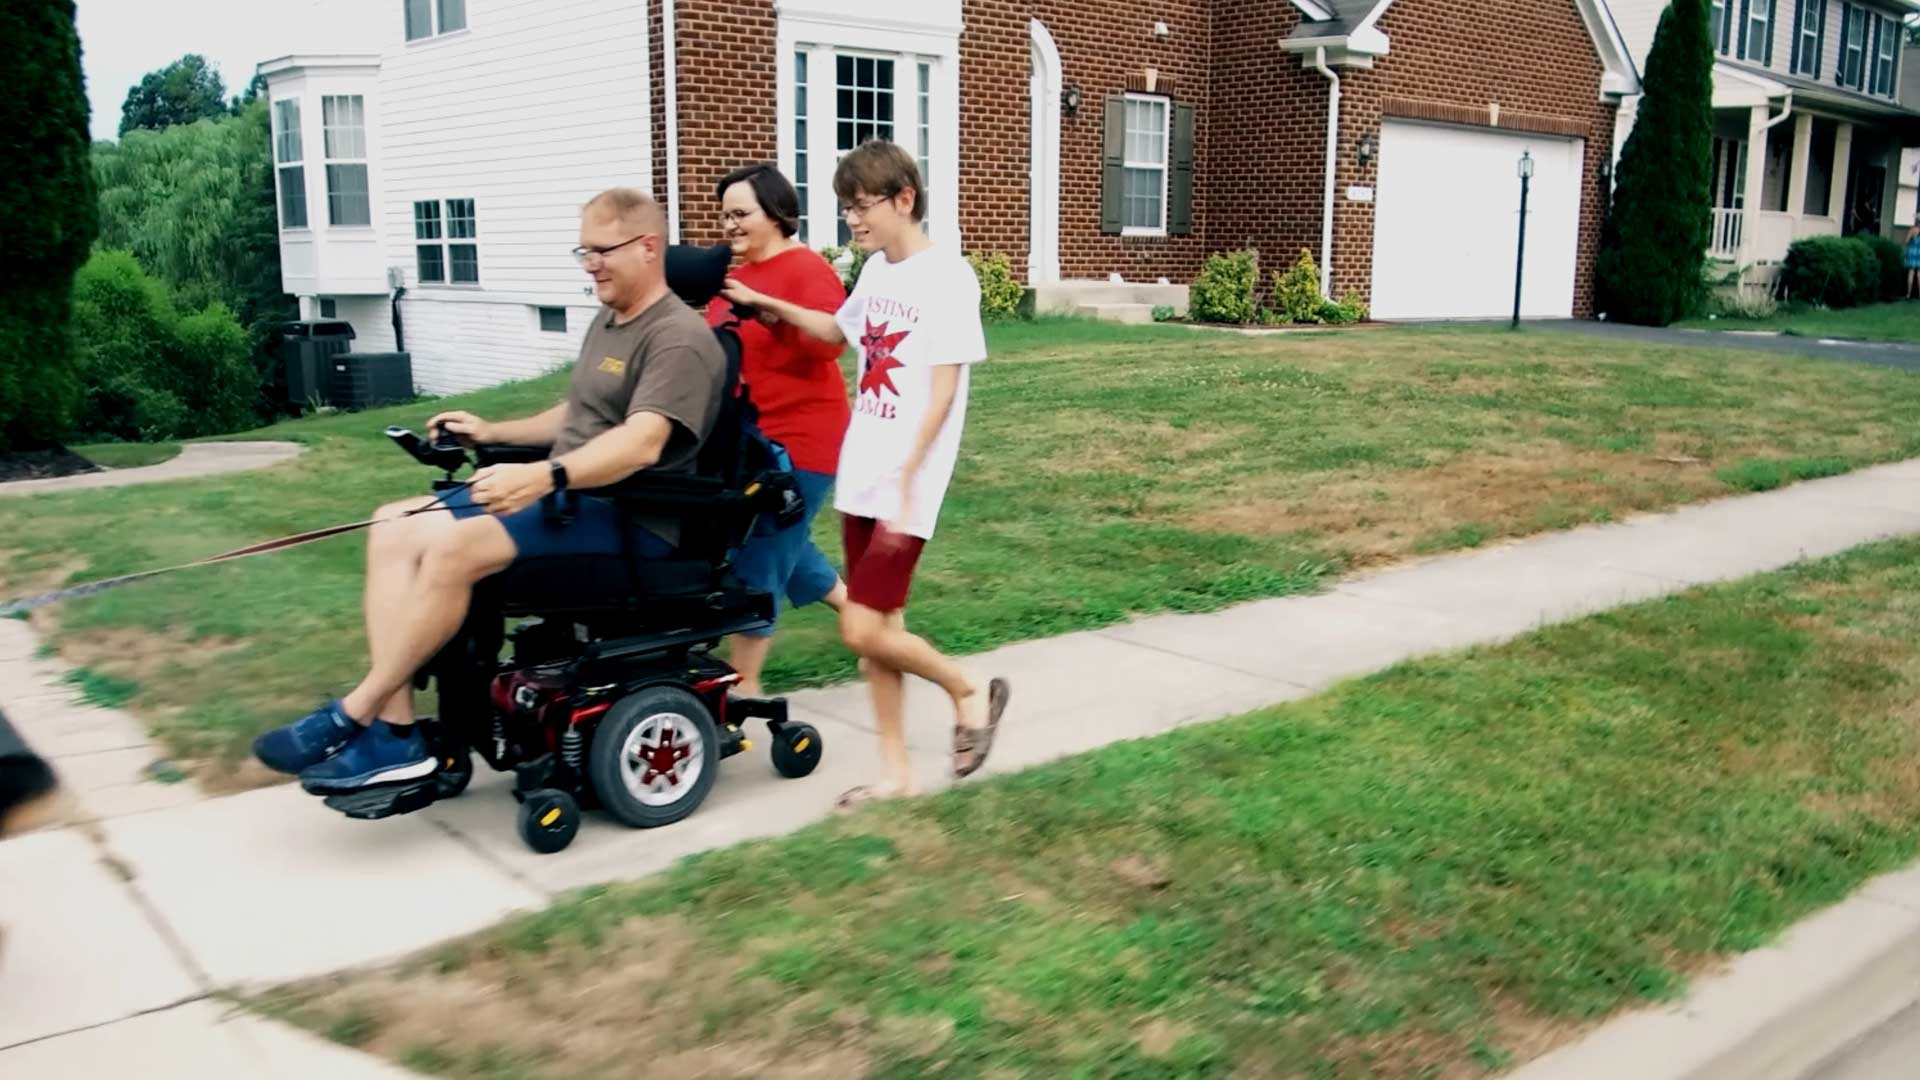 Person in Motorized Wheelchair with Two People Walking